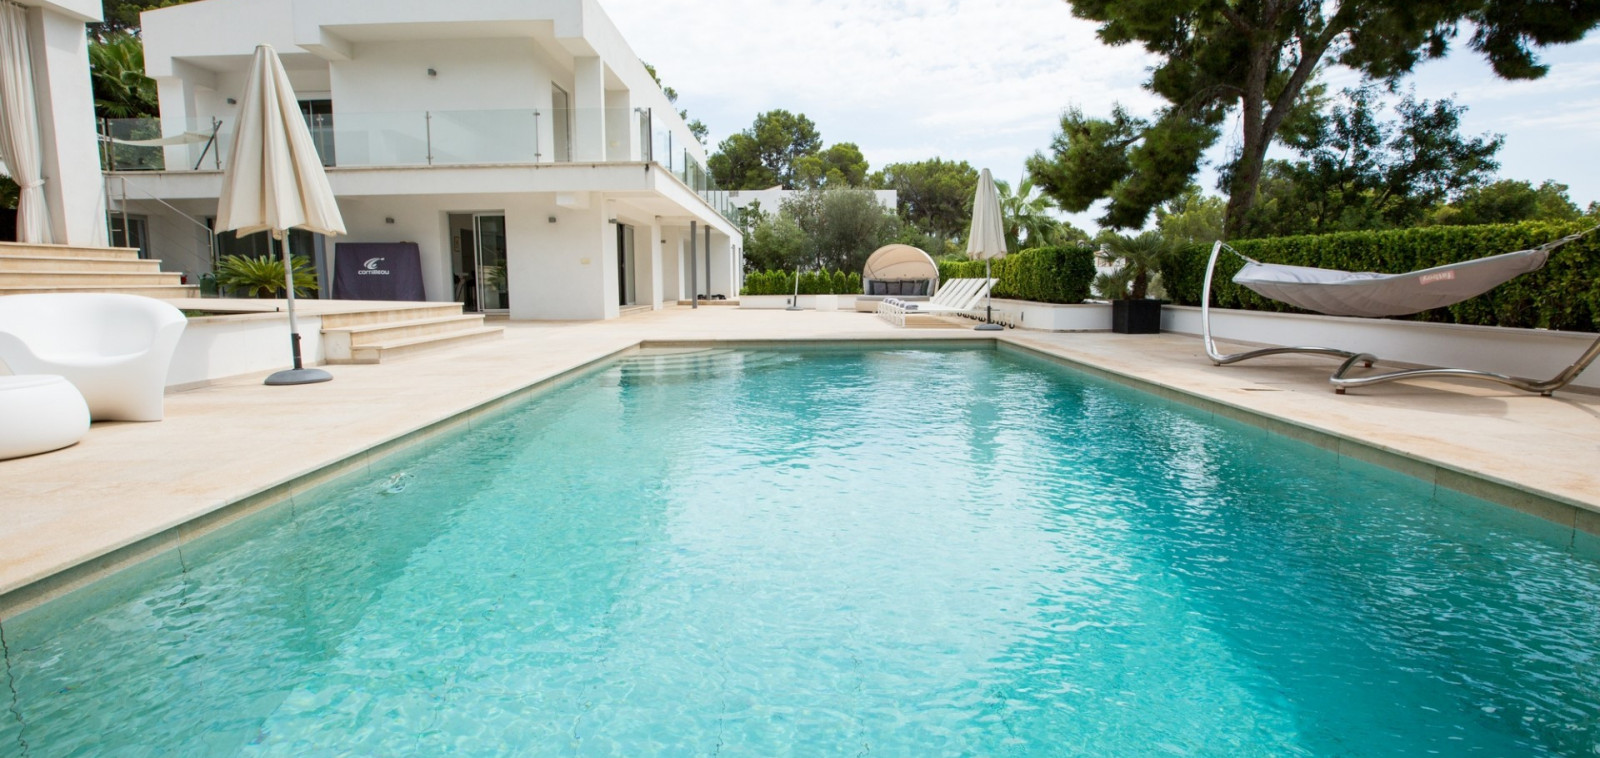 Holiday Villa In Mallorca Near Beach